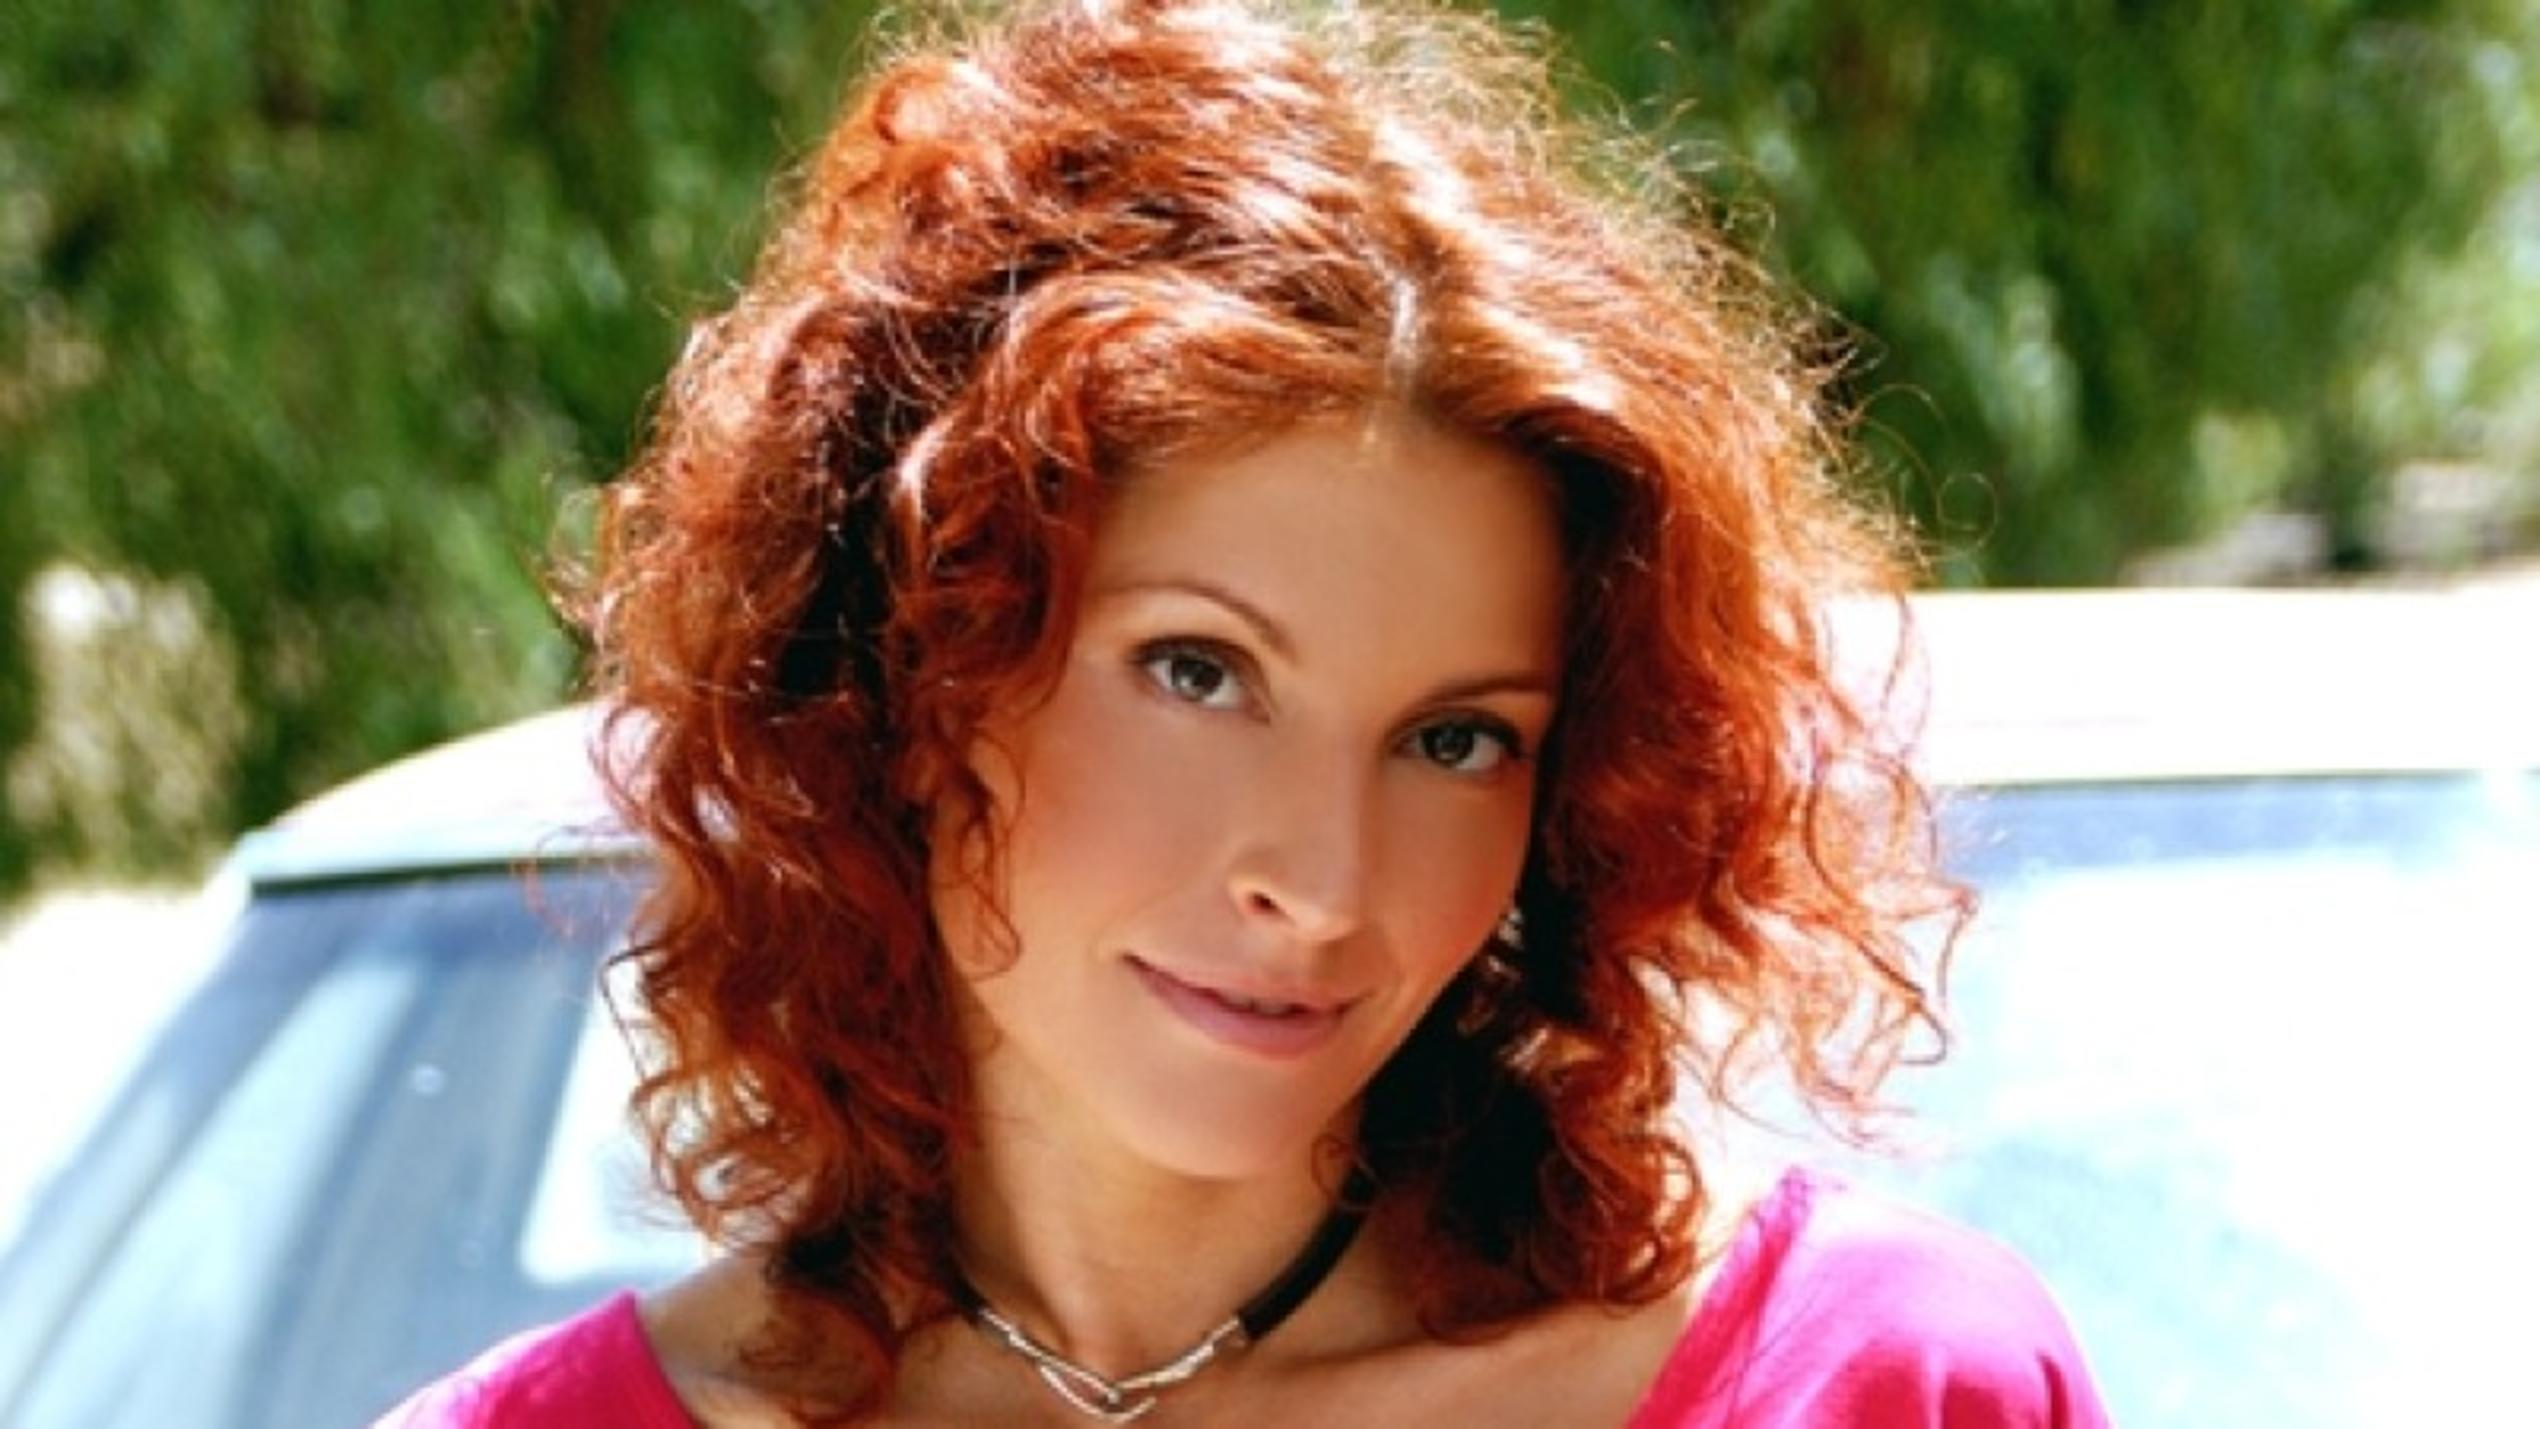 Simmone Mackinnon